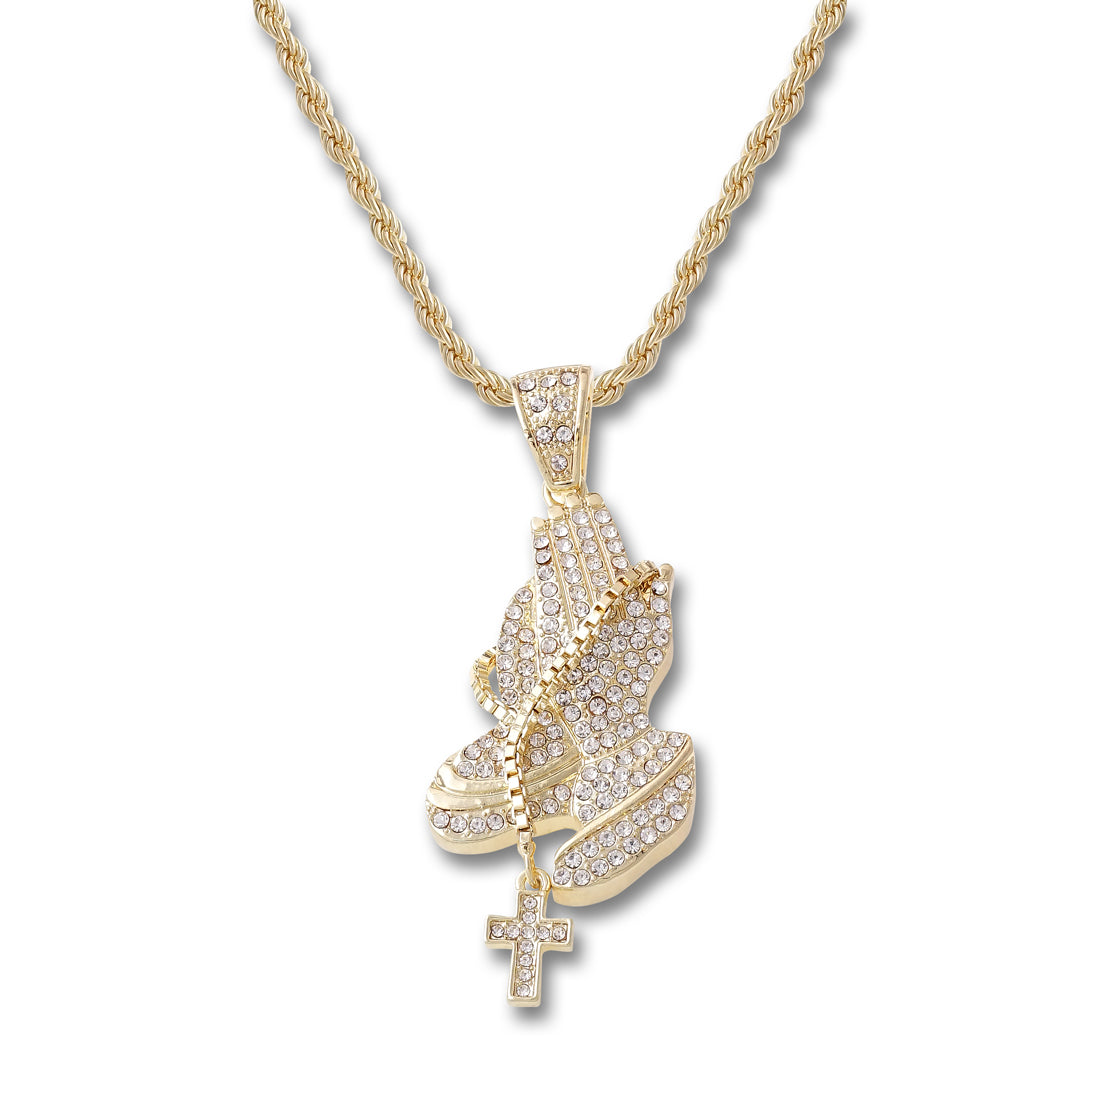 GOLD Praying Hands Cross Pendant Necklace - URBANCREWS